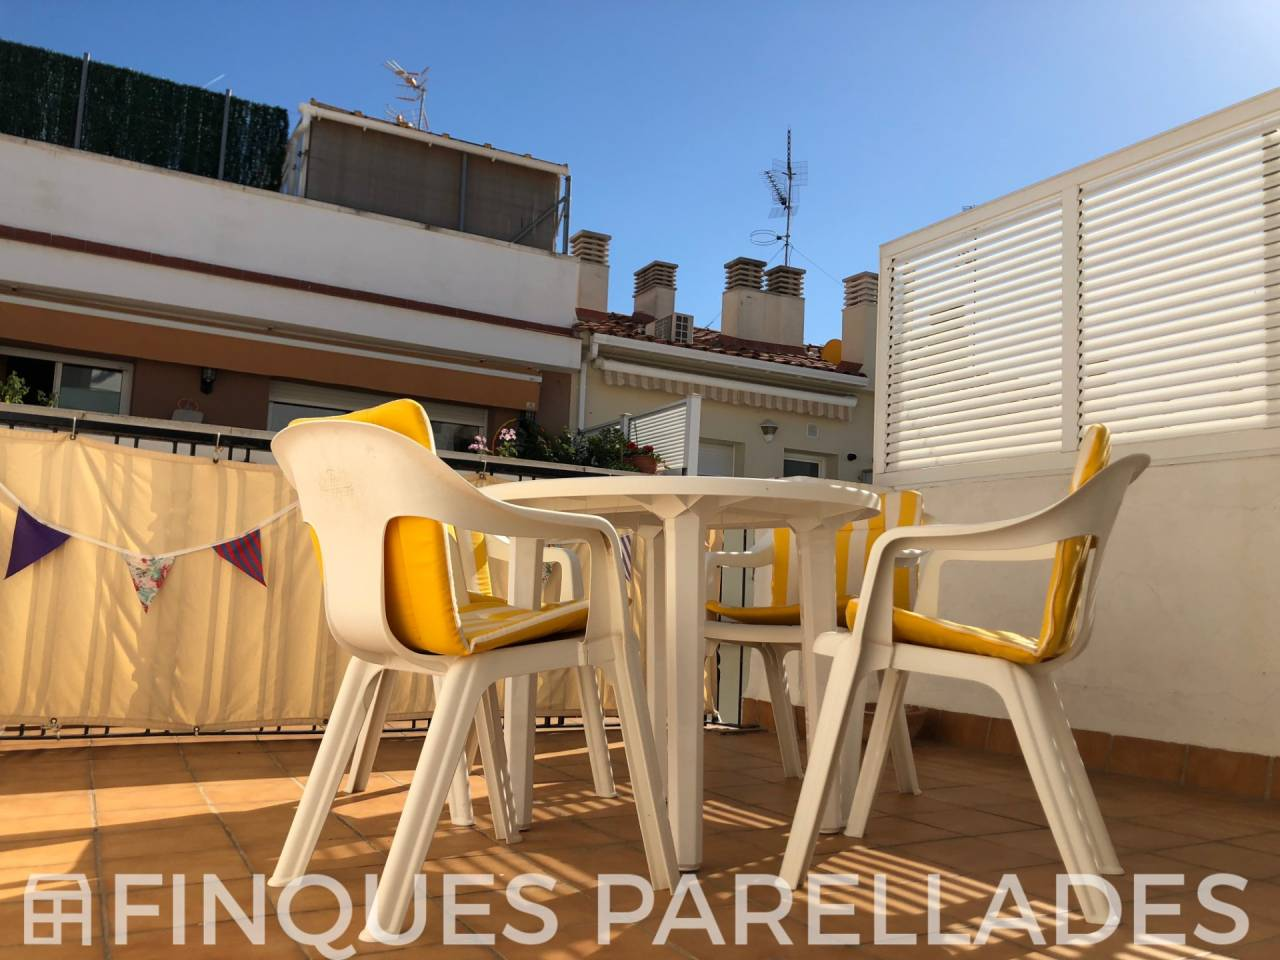 Penthouse for sale in one of the most beautiful streets of Sitges. San Sebsatian area - Downtown